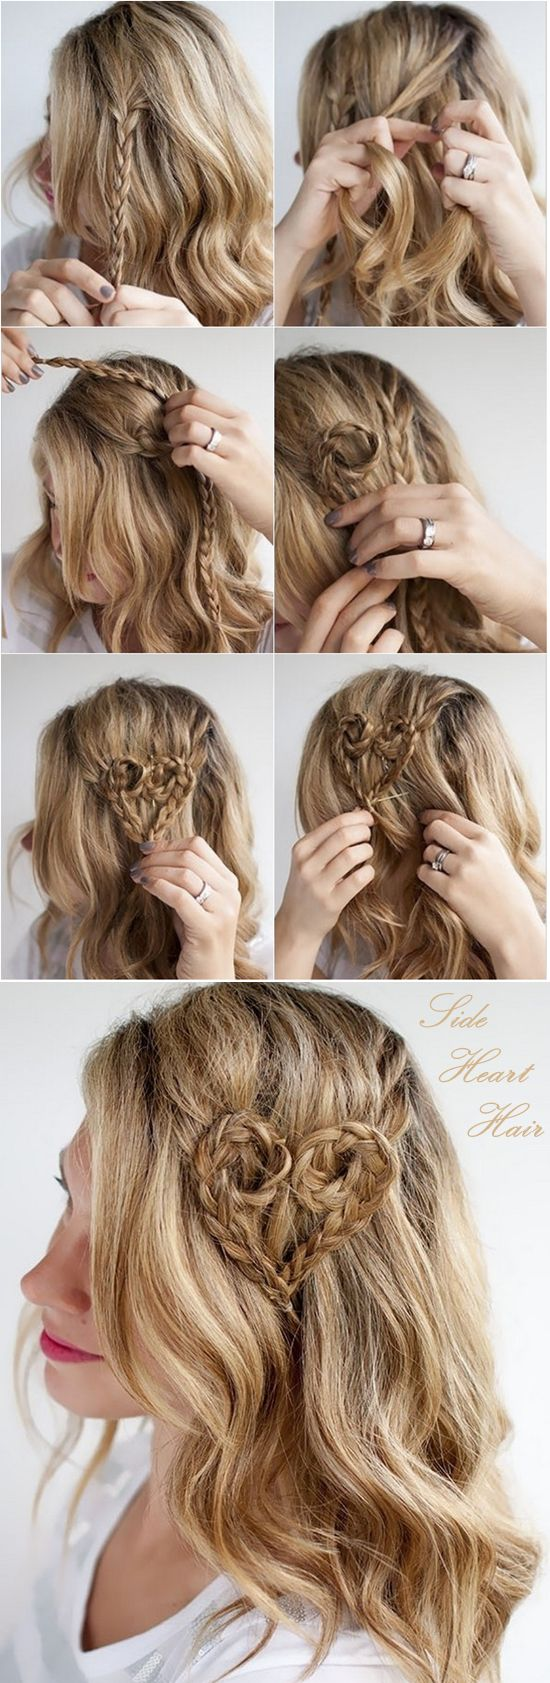 side heart hairstyle with brown ombre color hair extension clip on